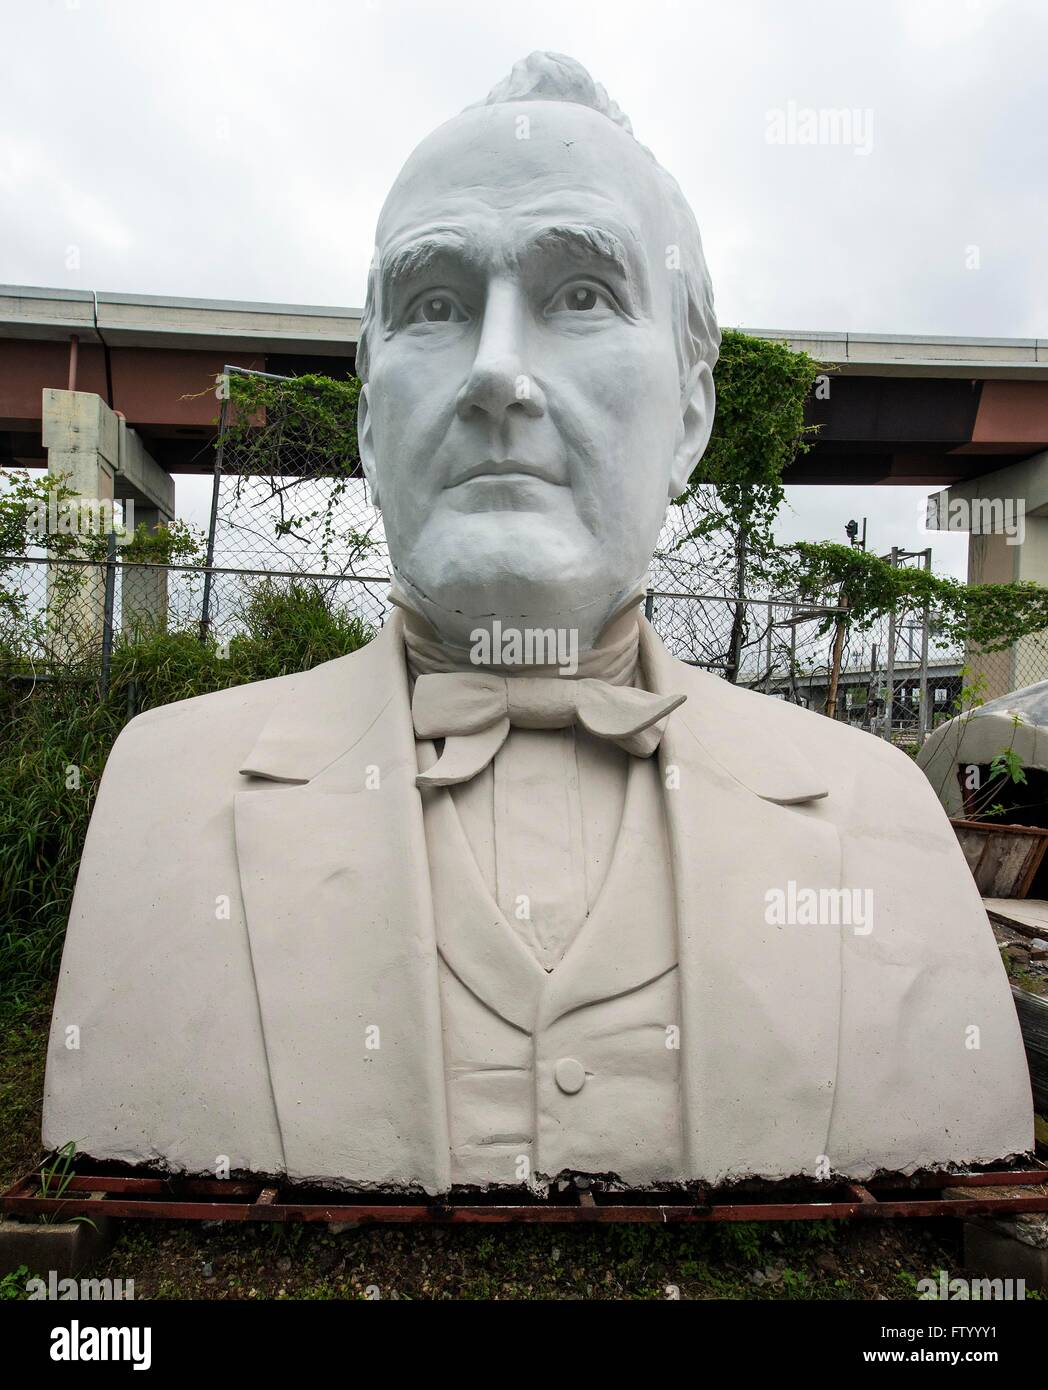 March 30, 2016 - Houston, Texas, U.S. -  Presidential heads by sculptor David Adickes are stored at the Adickes Sculpturworx Studio until a time when a permanent home is found for them.(Credit Image: © Brian Cahn via ZUMA Wire) Stock Photo